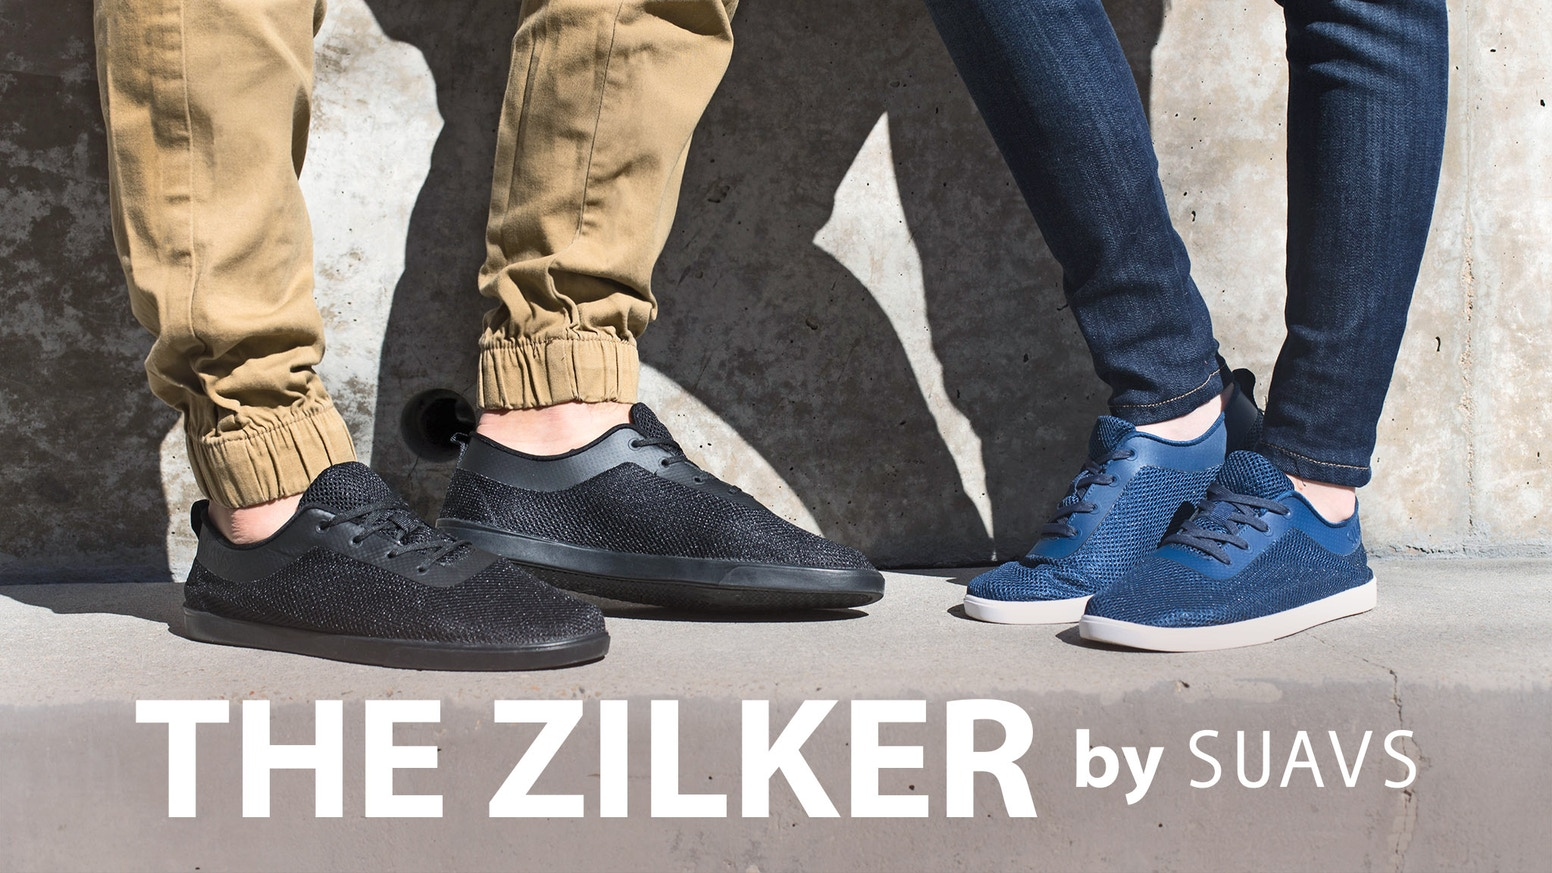 The minimalist, every day sneaker that provides comfort and versatility, even when going sockless.